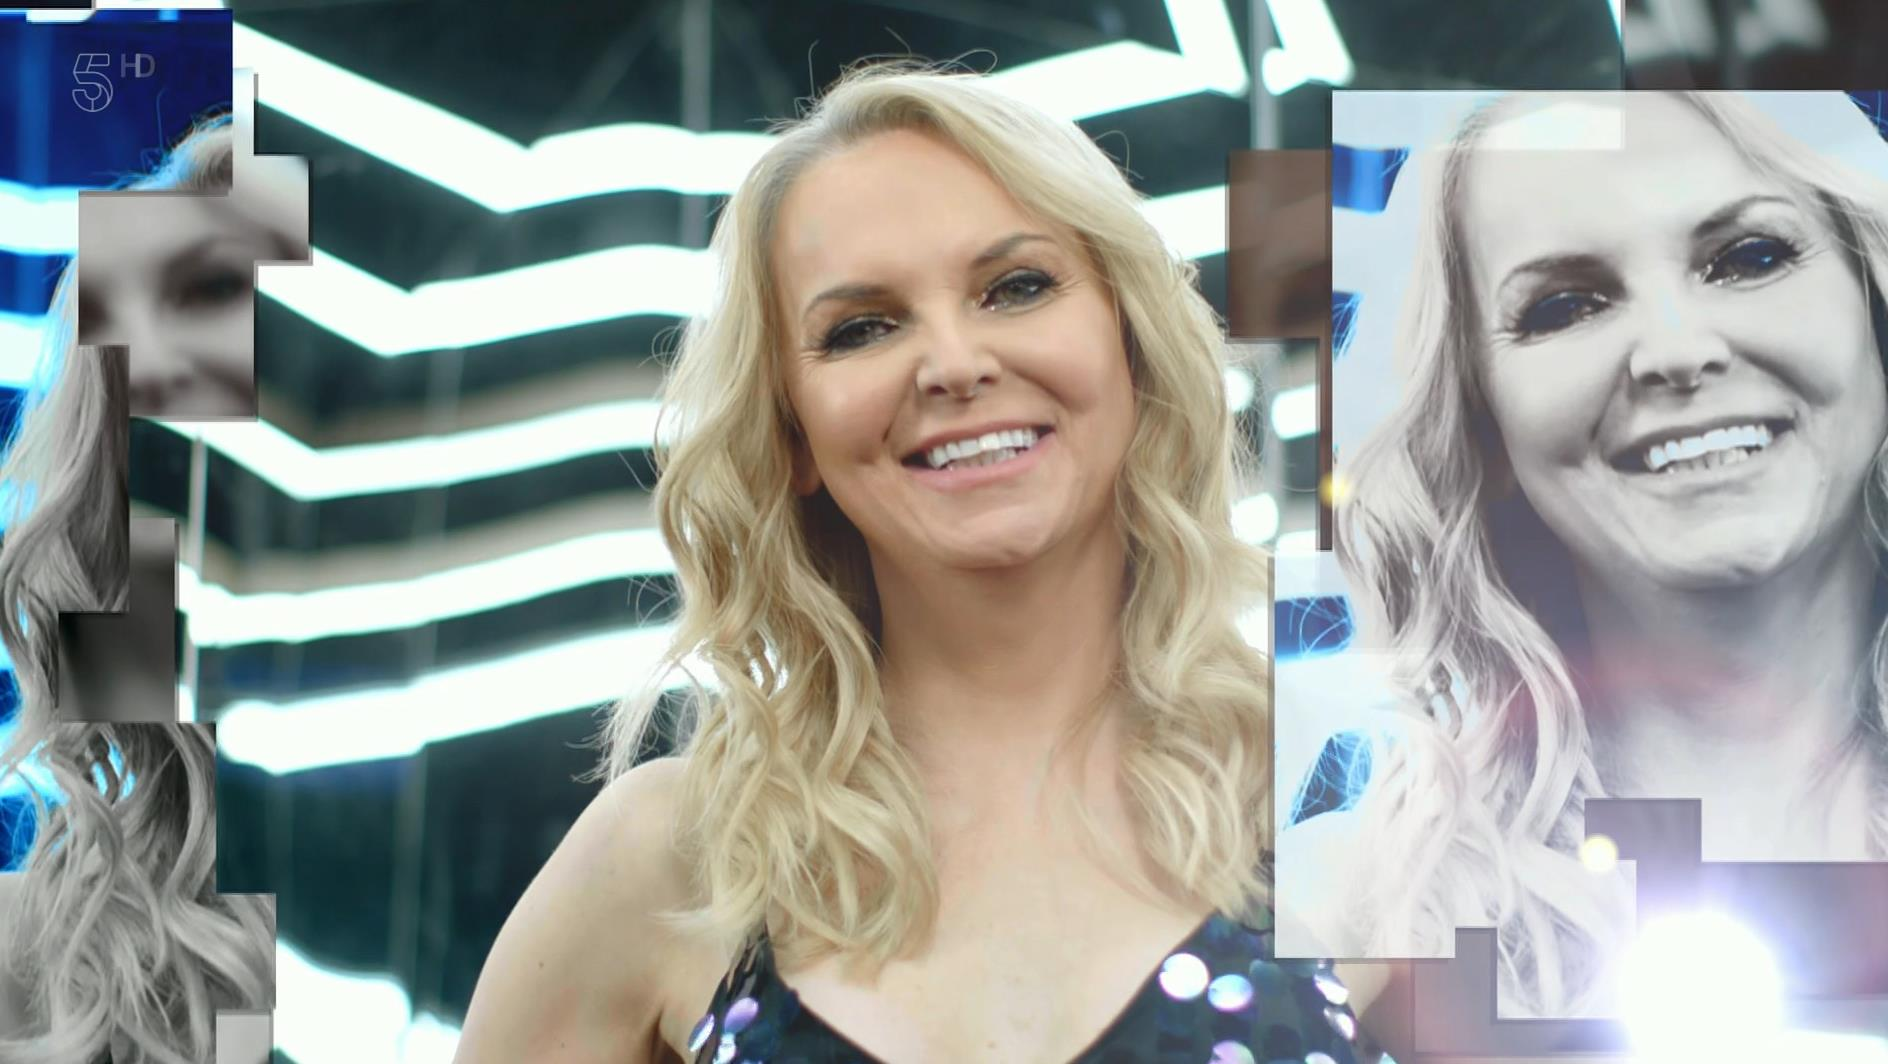 Channel 5 - Celebrity Big Brother - India Willoughby (19)